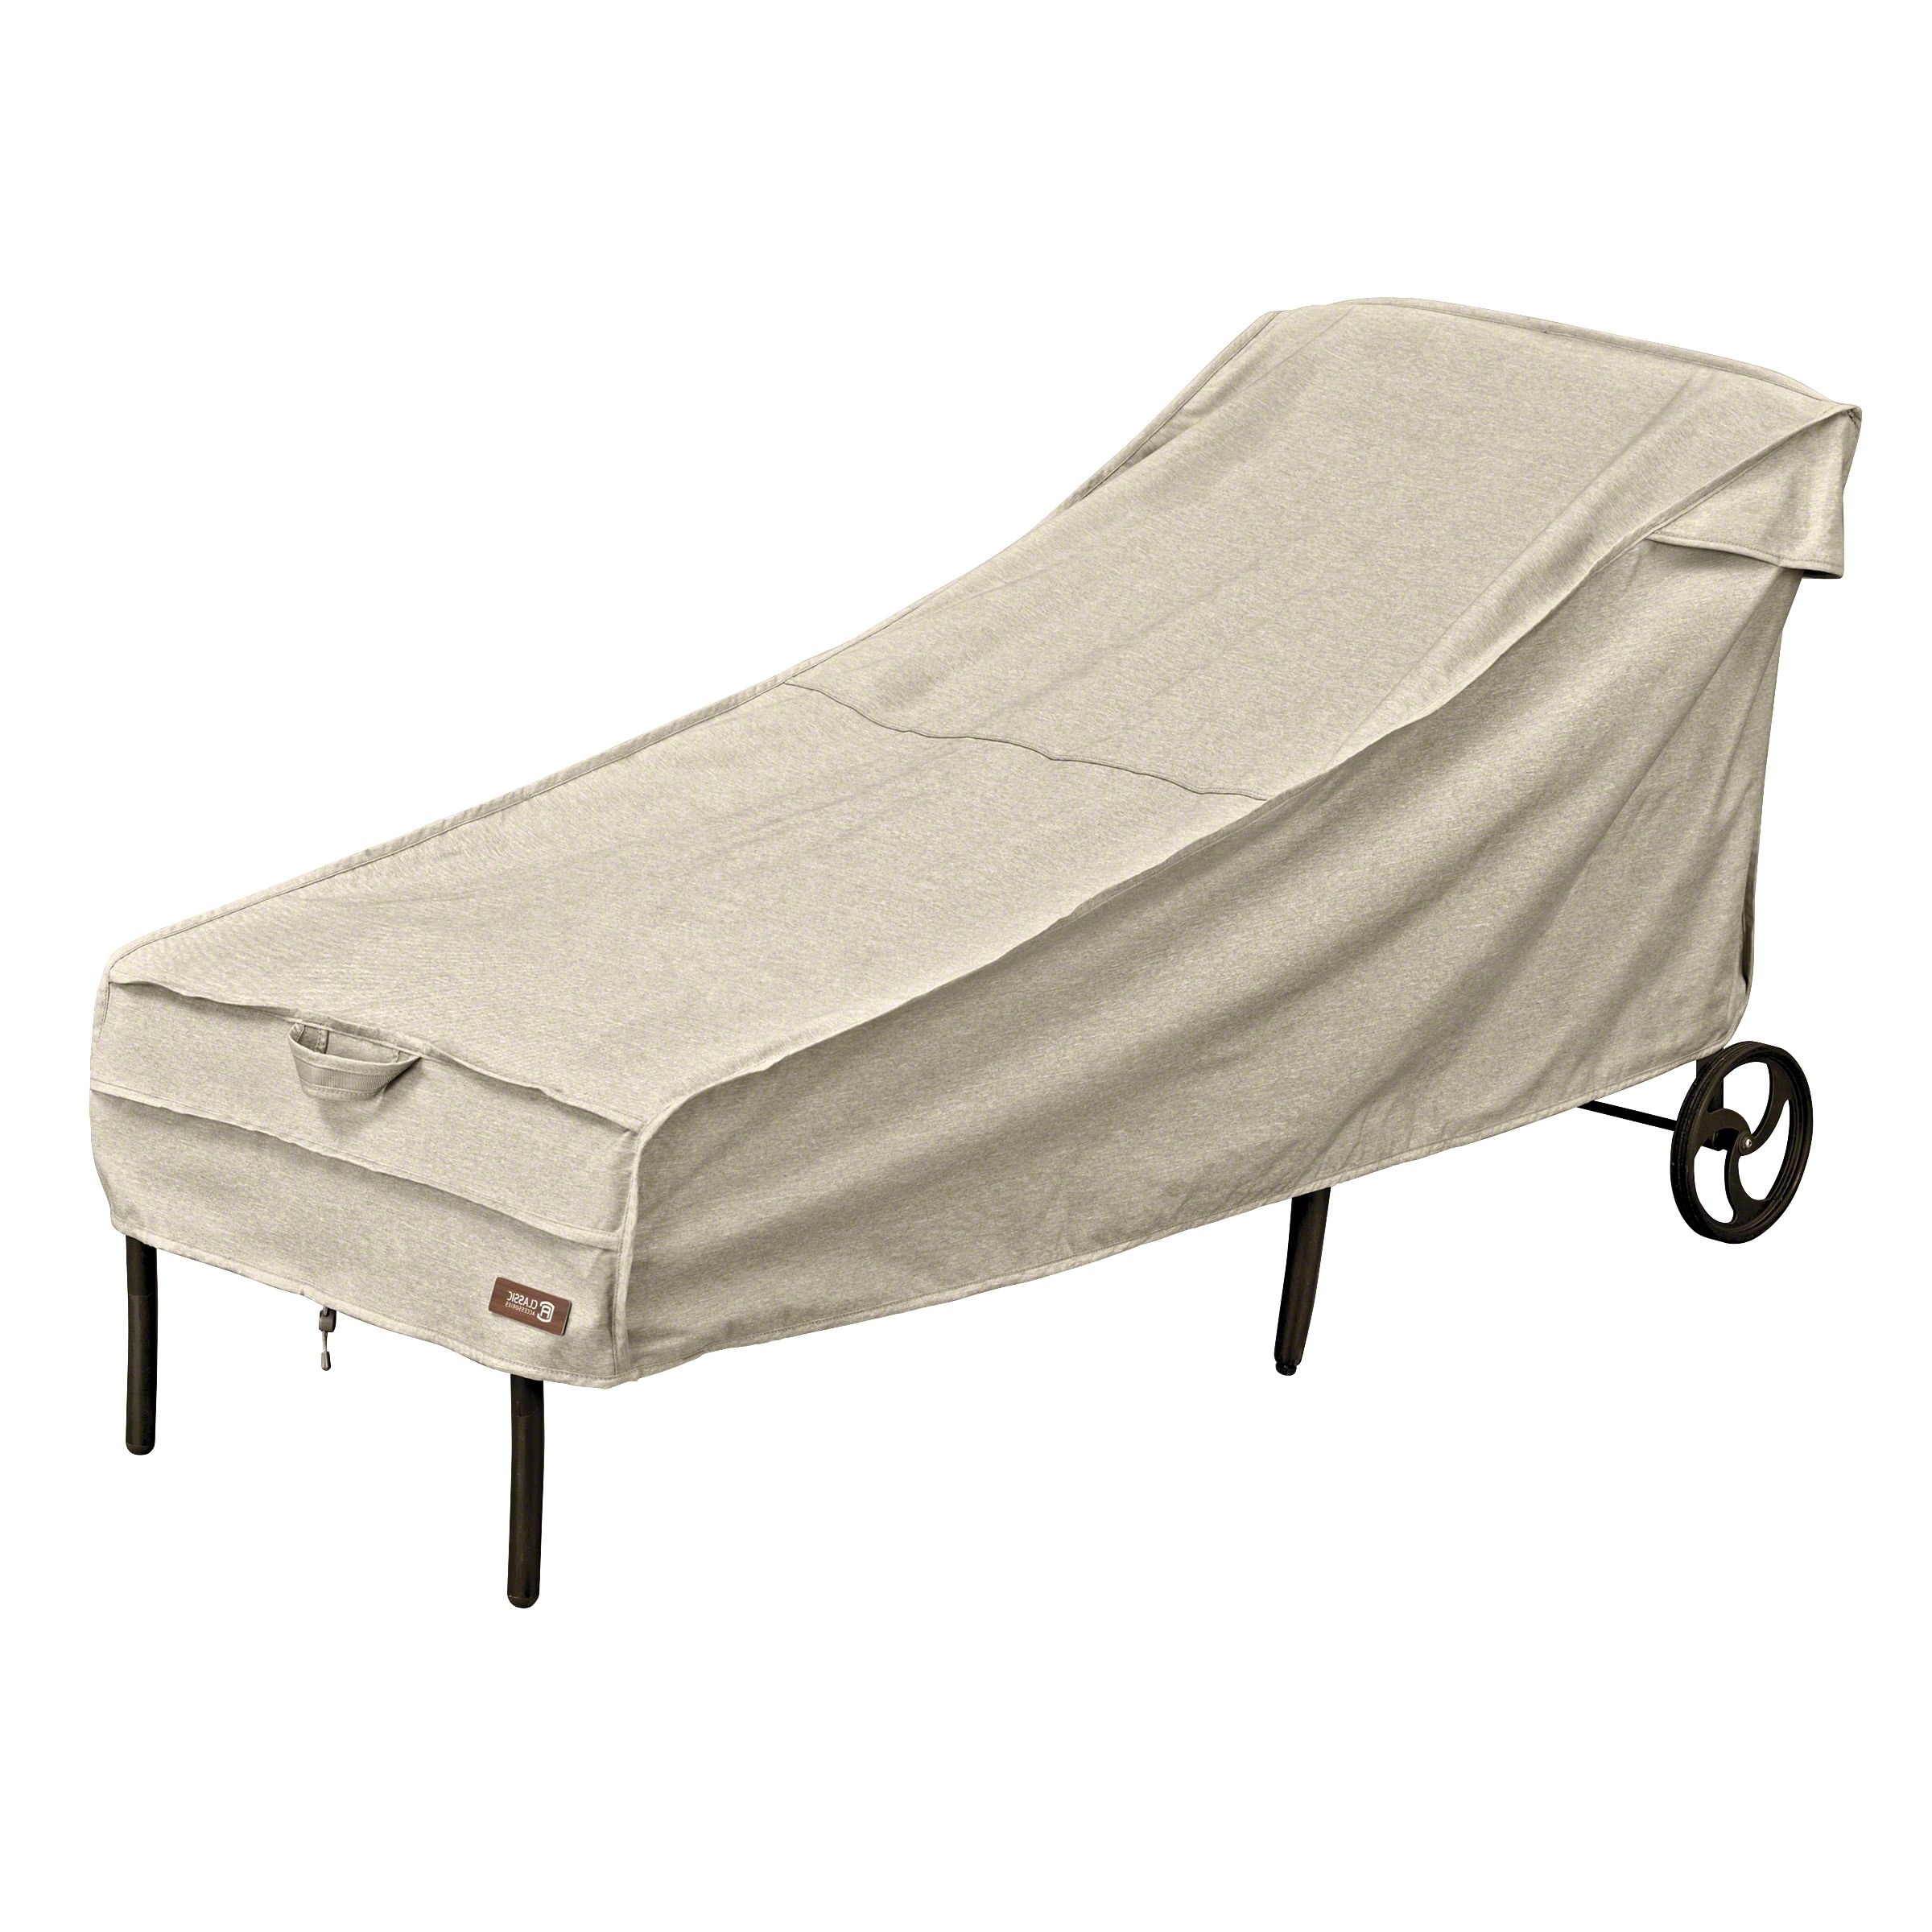 Well Liked 25 Fresh Outdoor Chaise Lounge Covers Ideas – Lounge Chair Ideas With Outdoor Chaise Lounge Covers (View 11 of 15)